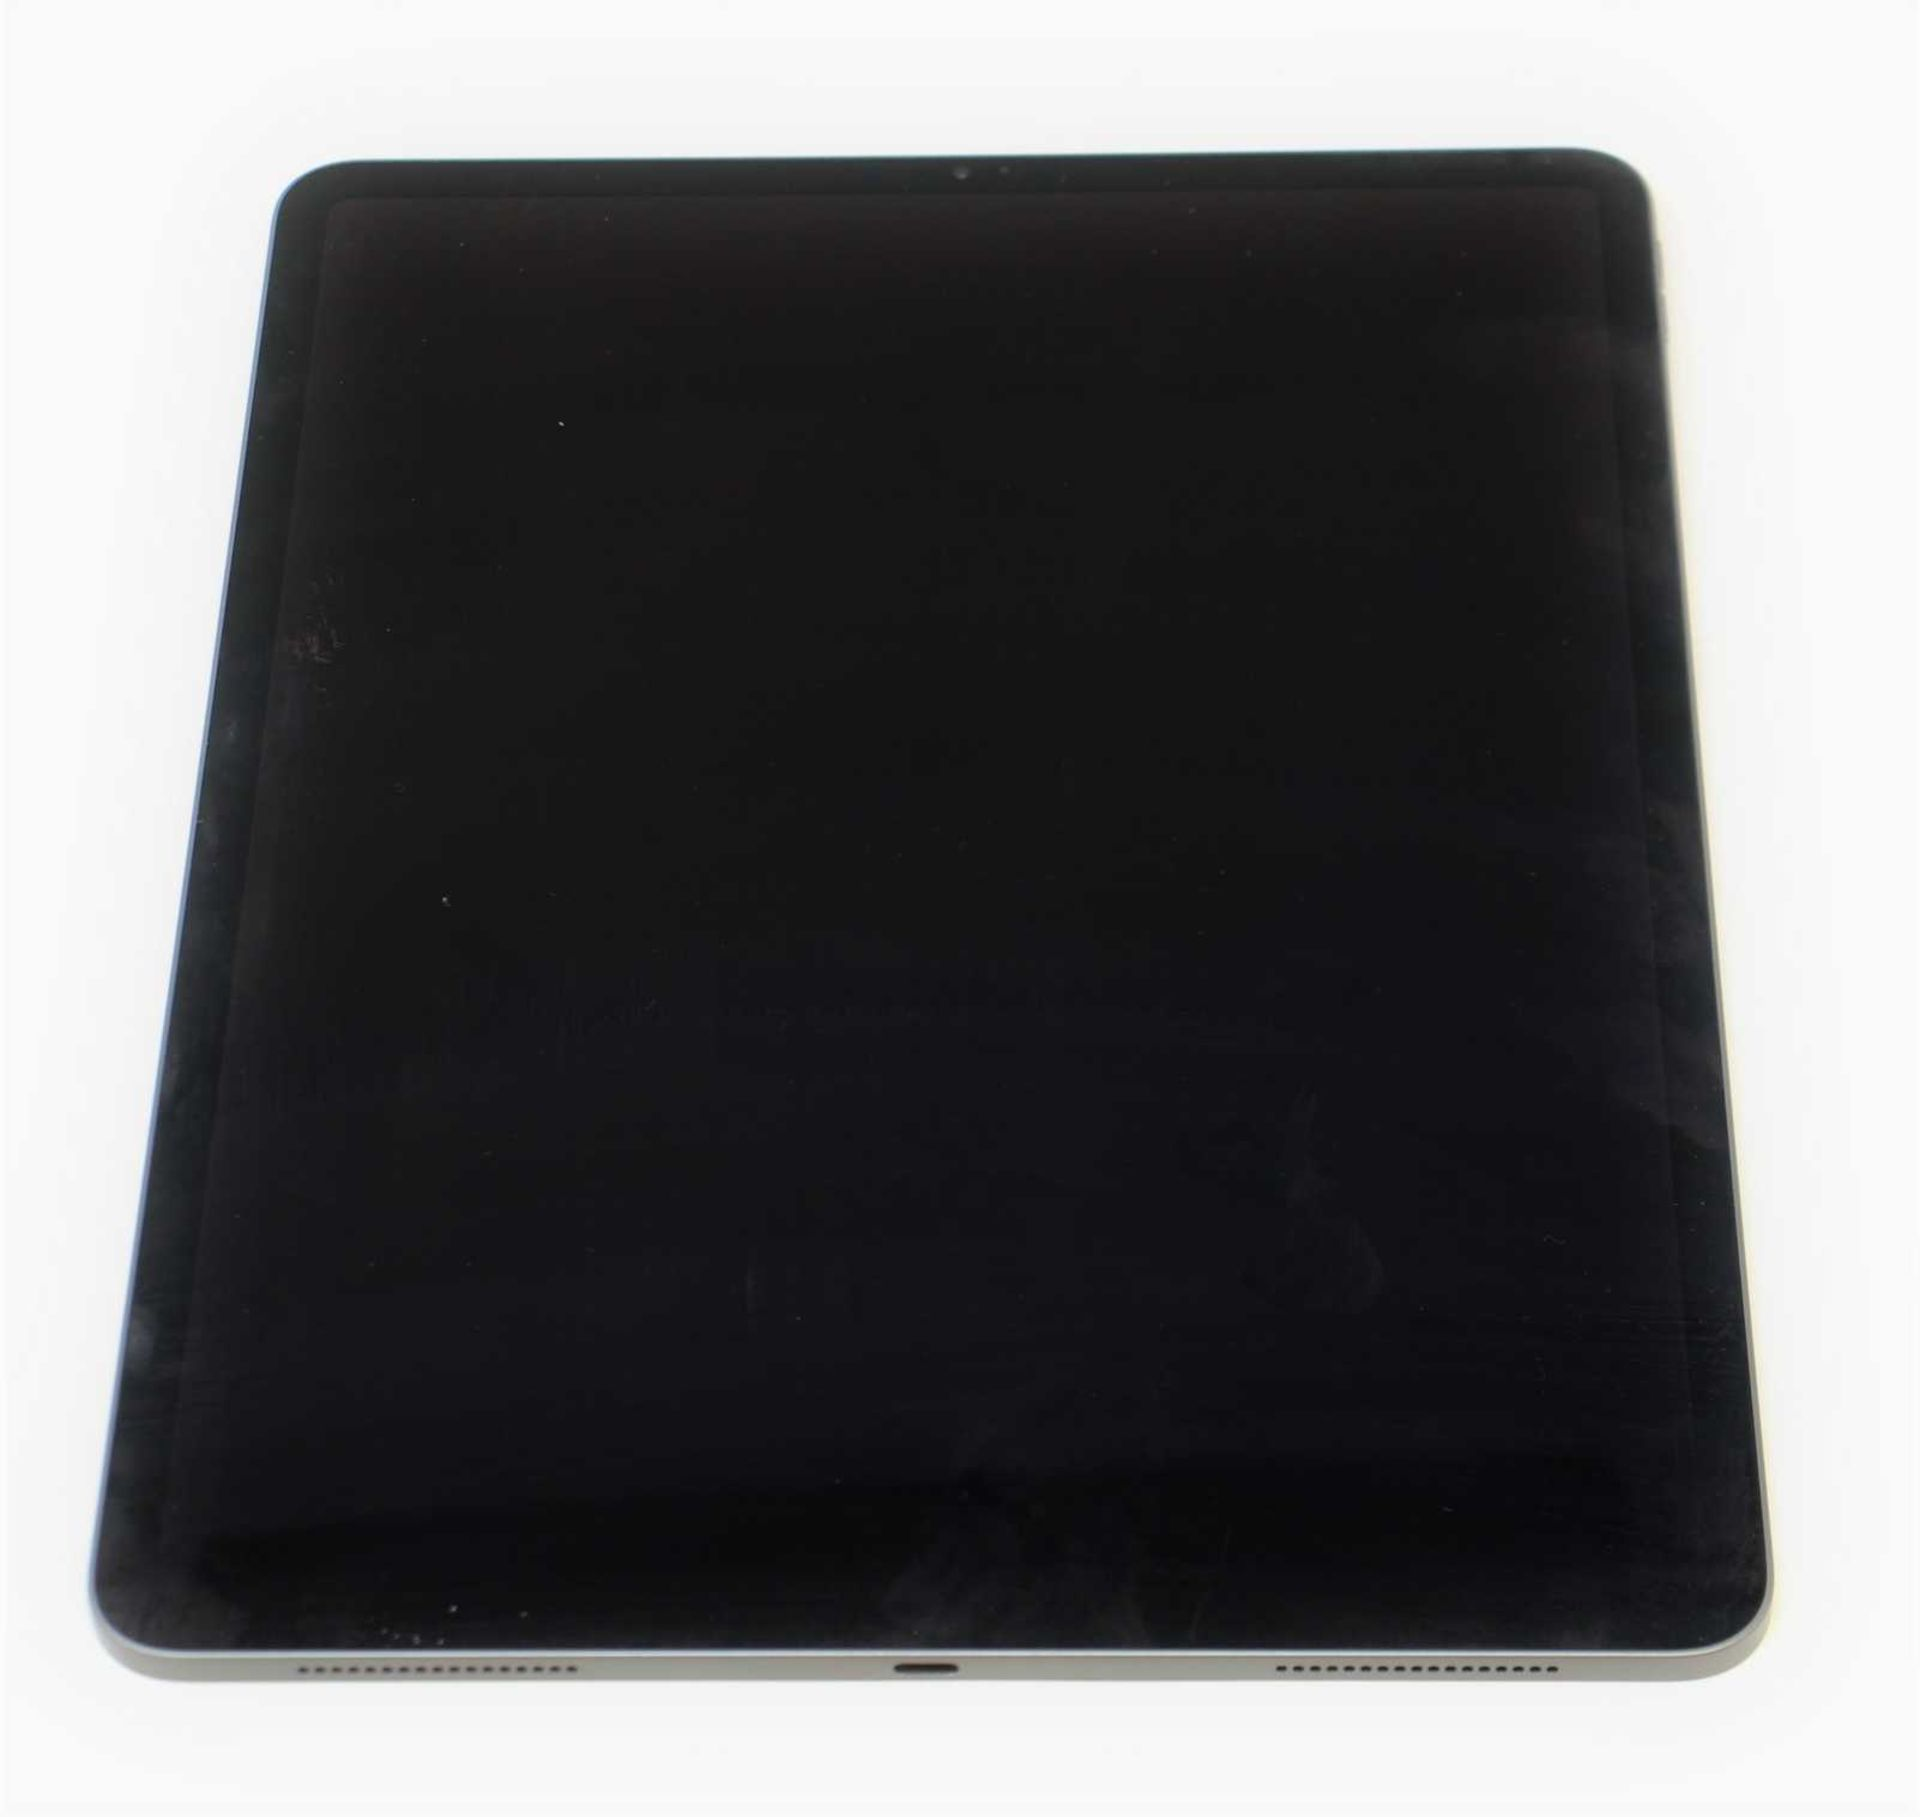 "SOLD FOR PARTS: A pre-owned Apple iPad Pro 3 12.9"" A1876 256GB in Space Grey (Activation lock clear) - Image 6 of 7"